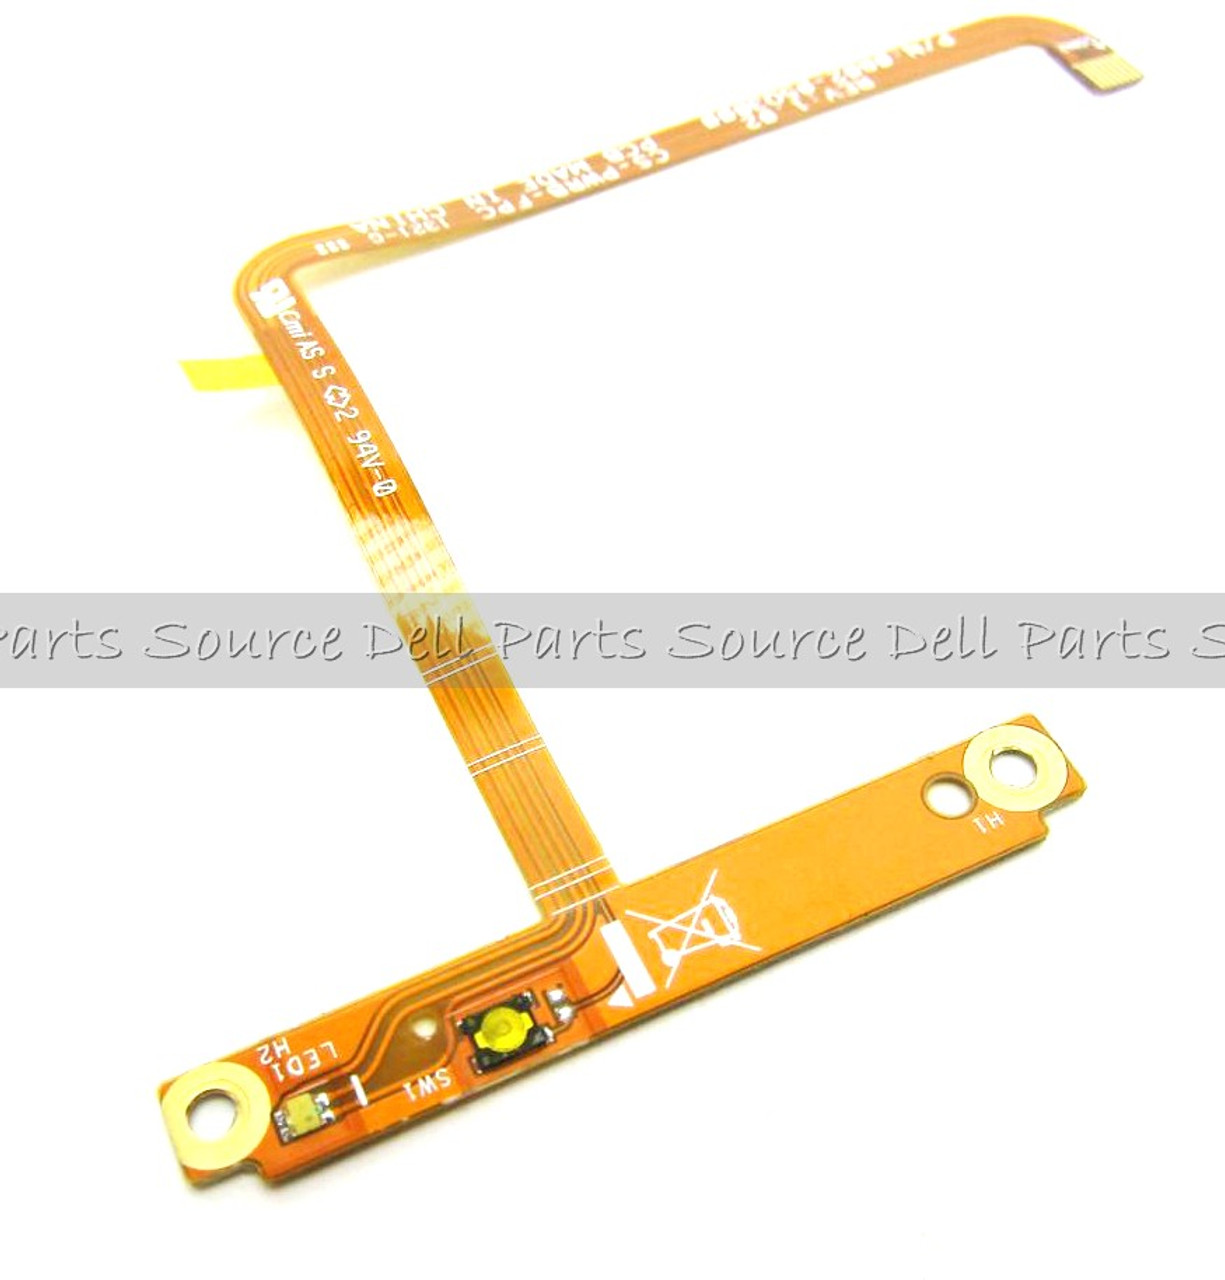 Dell XPS 18 1810 Power Button Switch Board W/ Cable - 0802-05Q3000